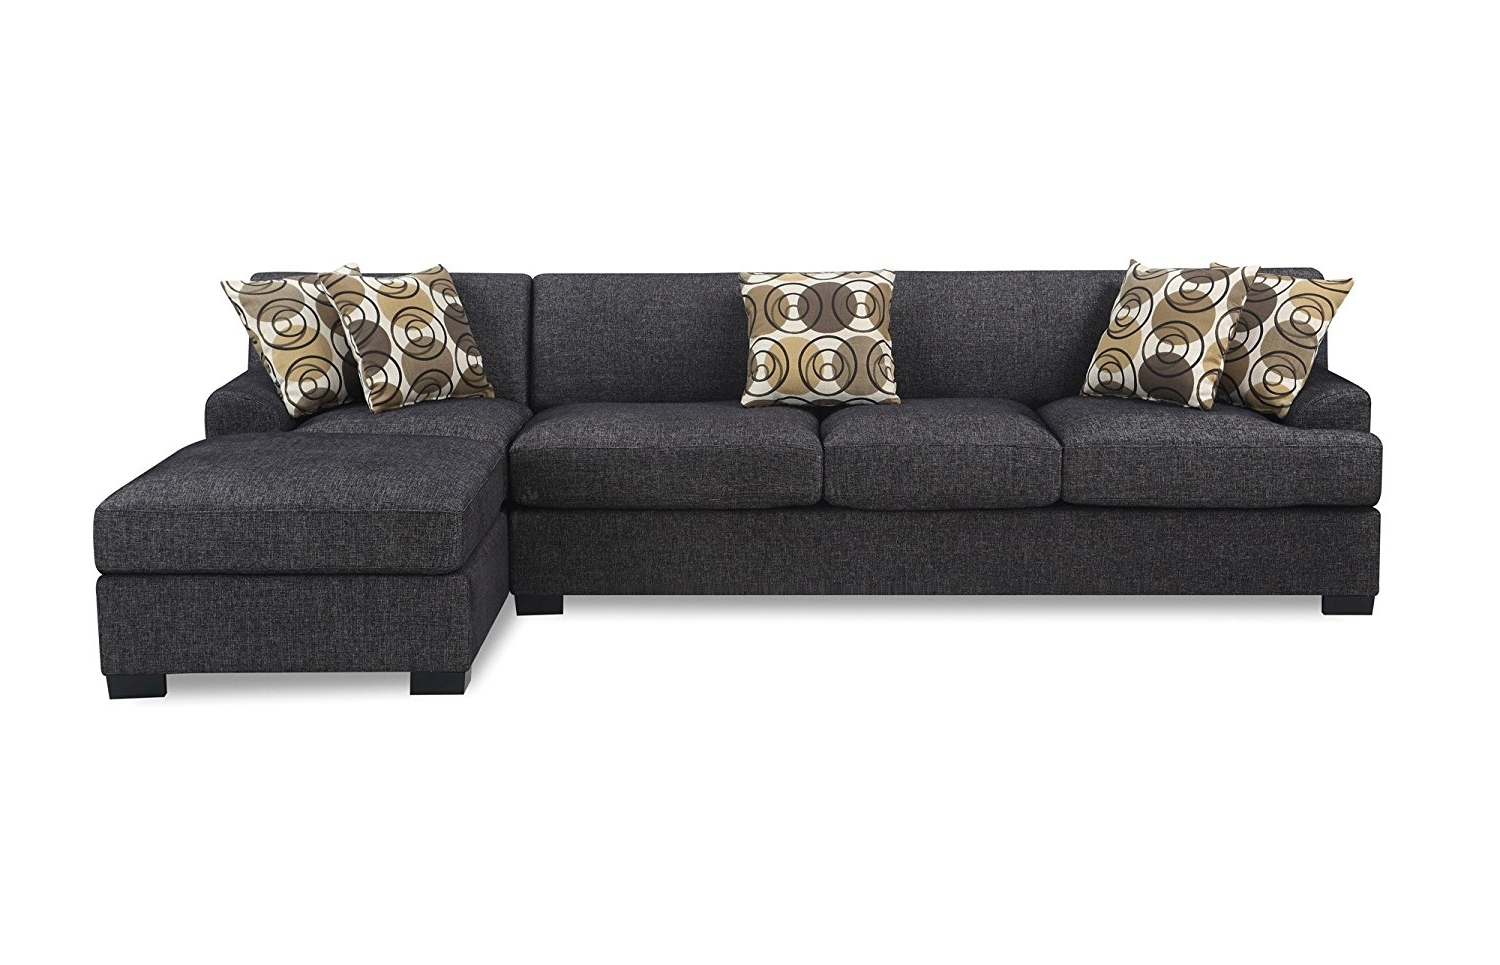 Sectional Sofas With 2 Chaises Pertaining To Newest Amazon: Bobkona Benford 2 Piece Chaise Loveseat Sectional Sofa (View 11 of 15)